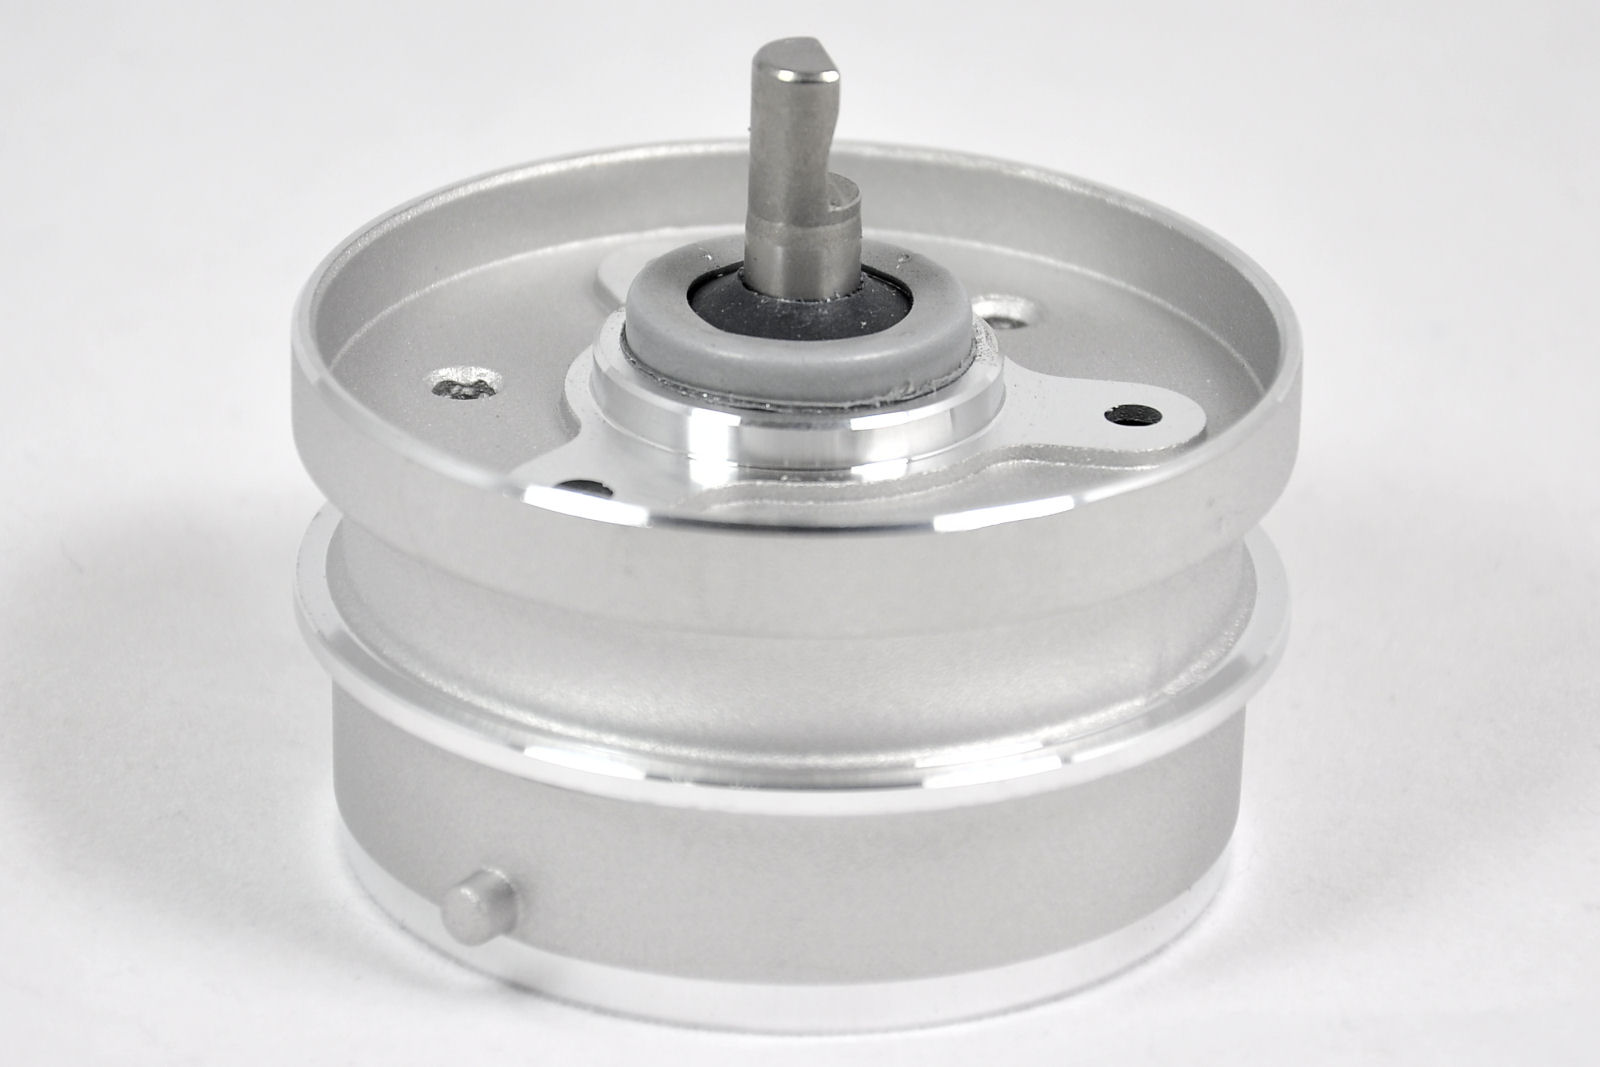 Mounting shaft for Panasonic Breadmaker [PAN.BRE.ADA29E1651]